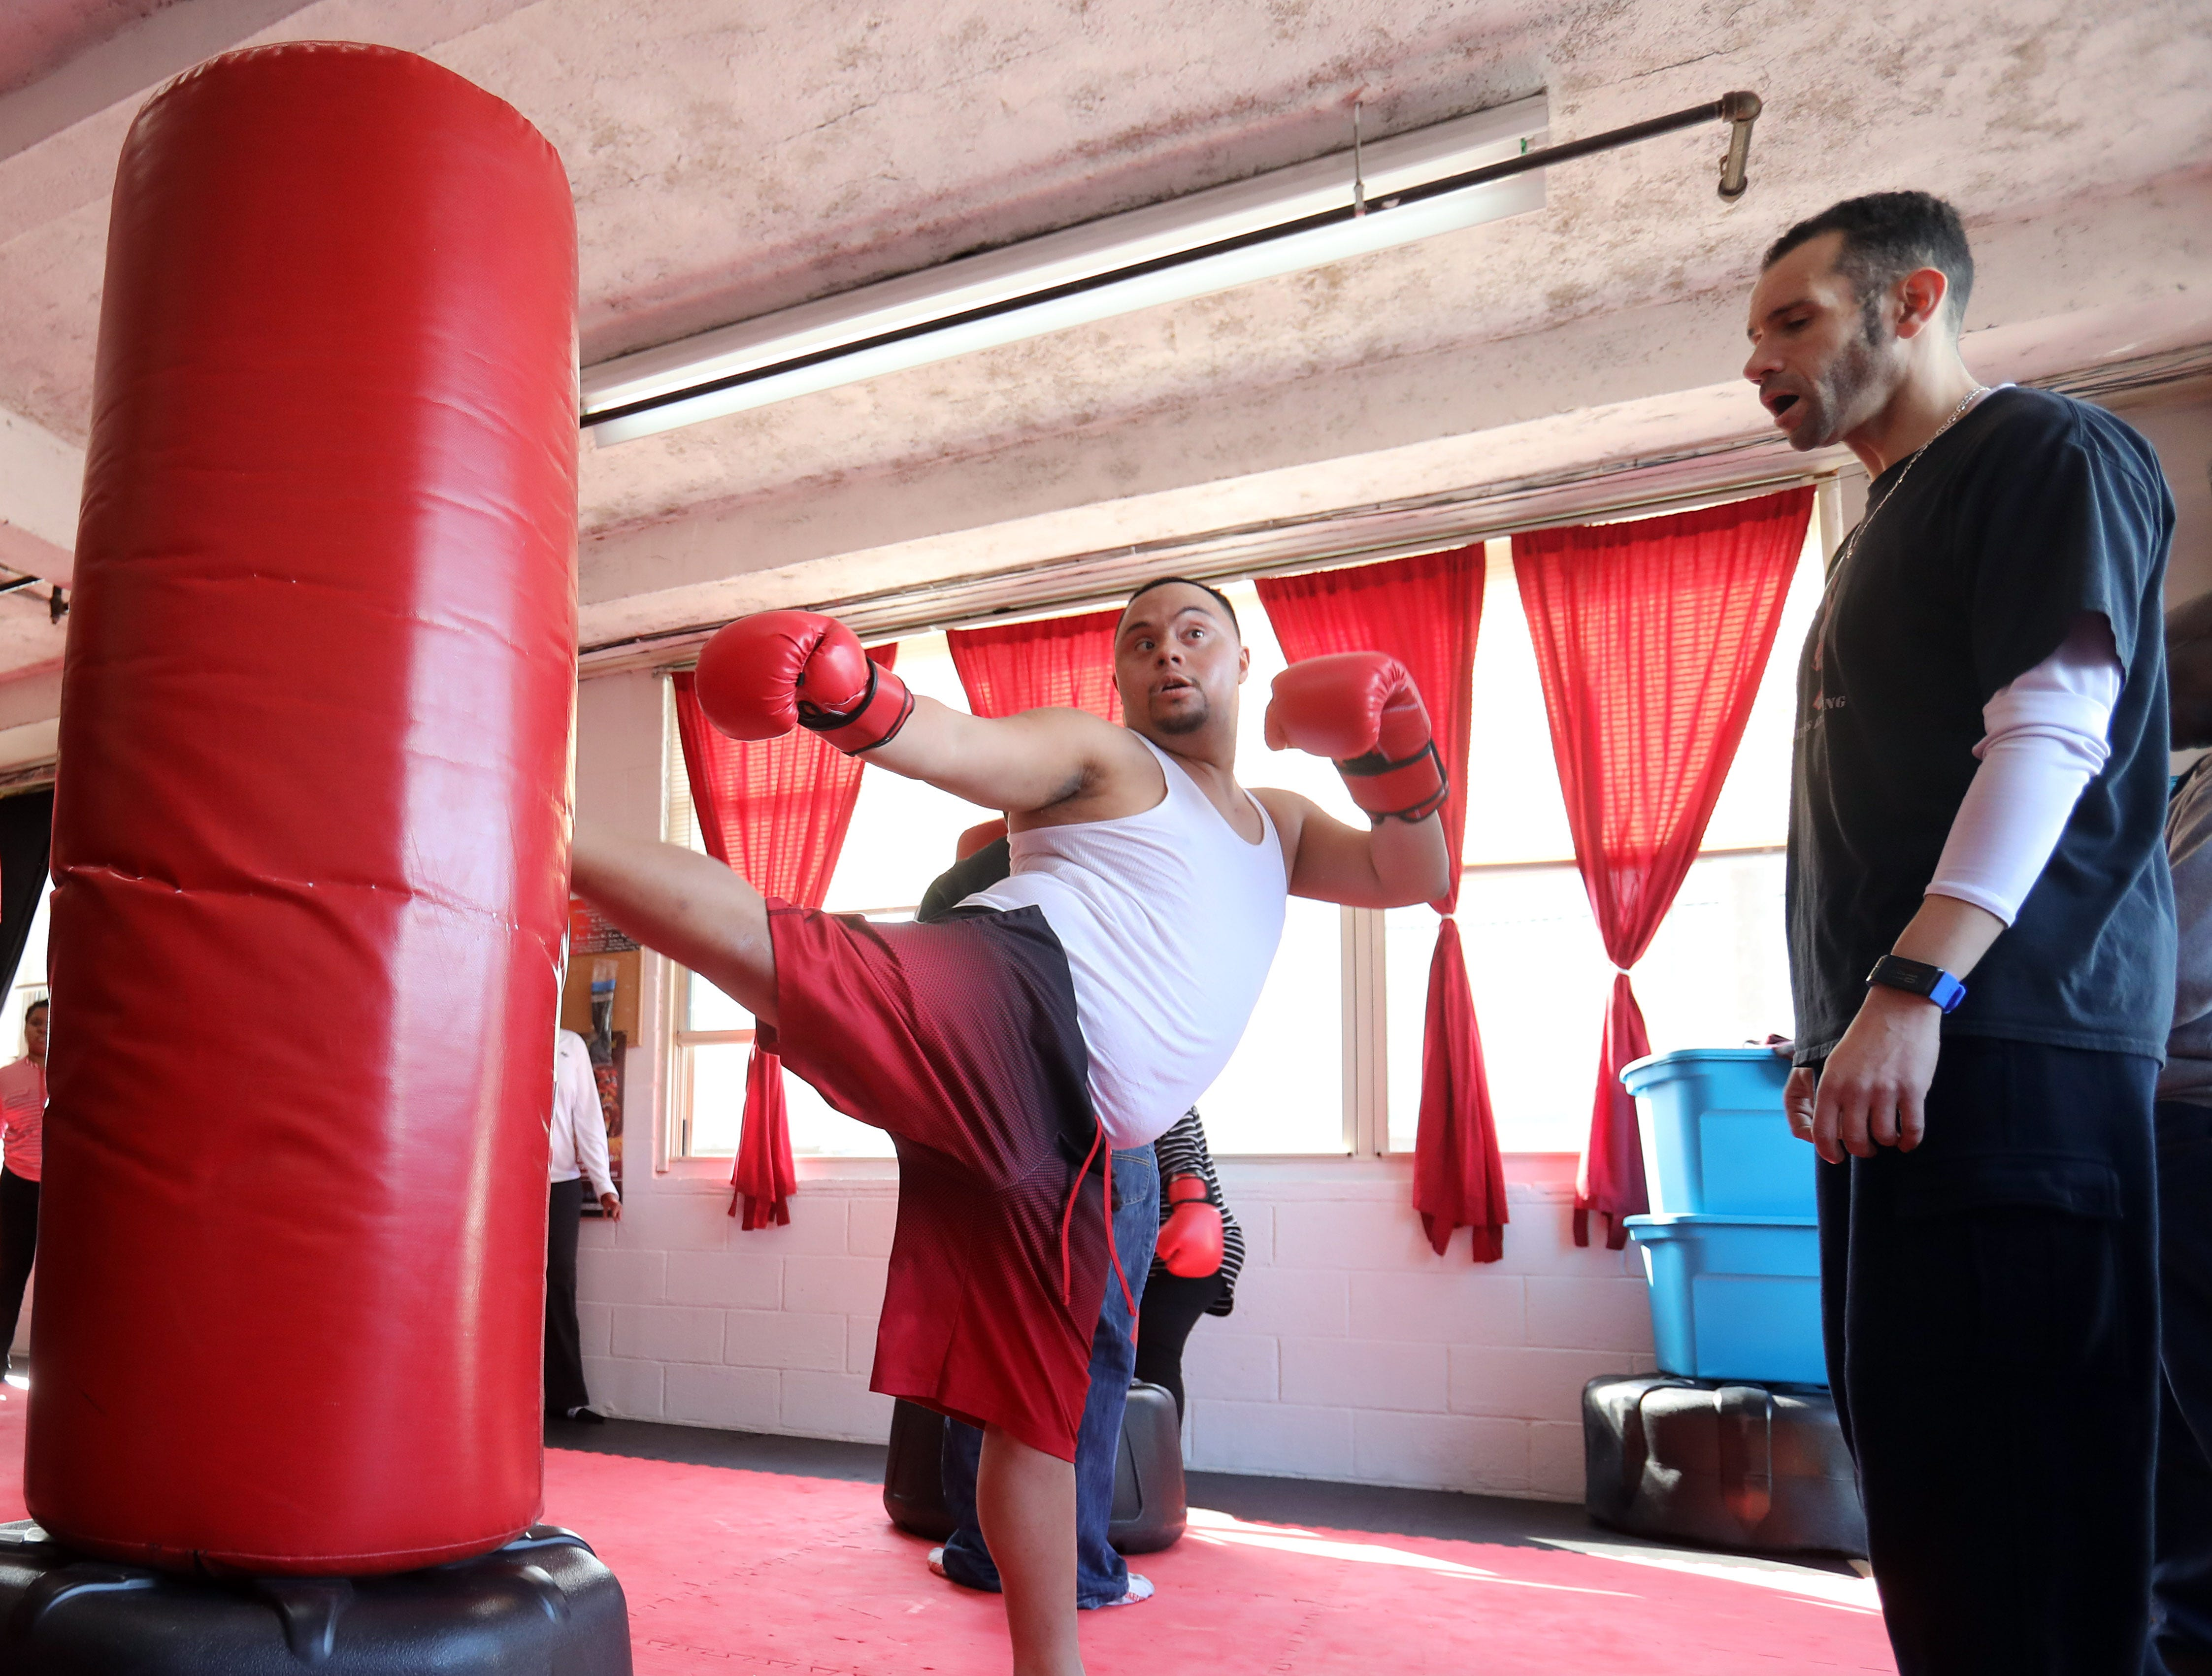 Trainer Amir gives Anthony Mundy, 29 some pointers on his kick during a kick boxing class at Anubis Fitness in Nyack March 14, 2019.